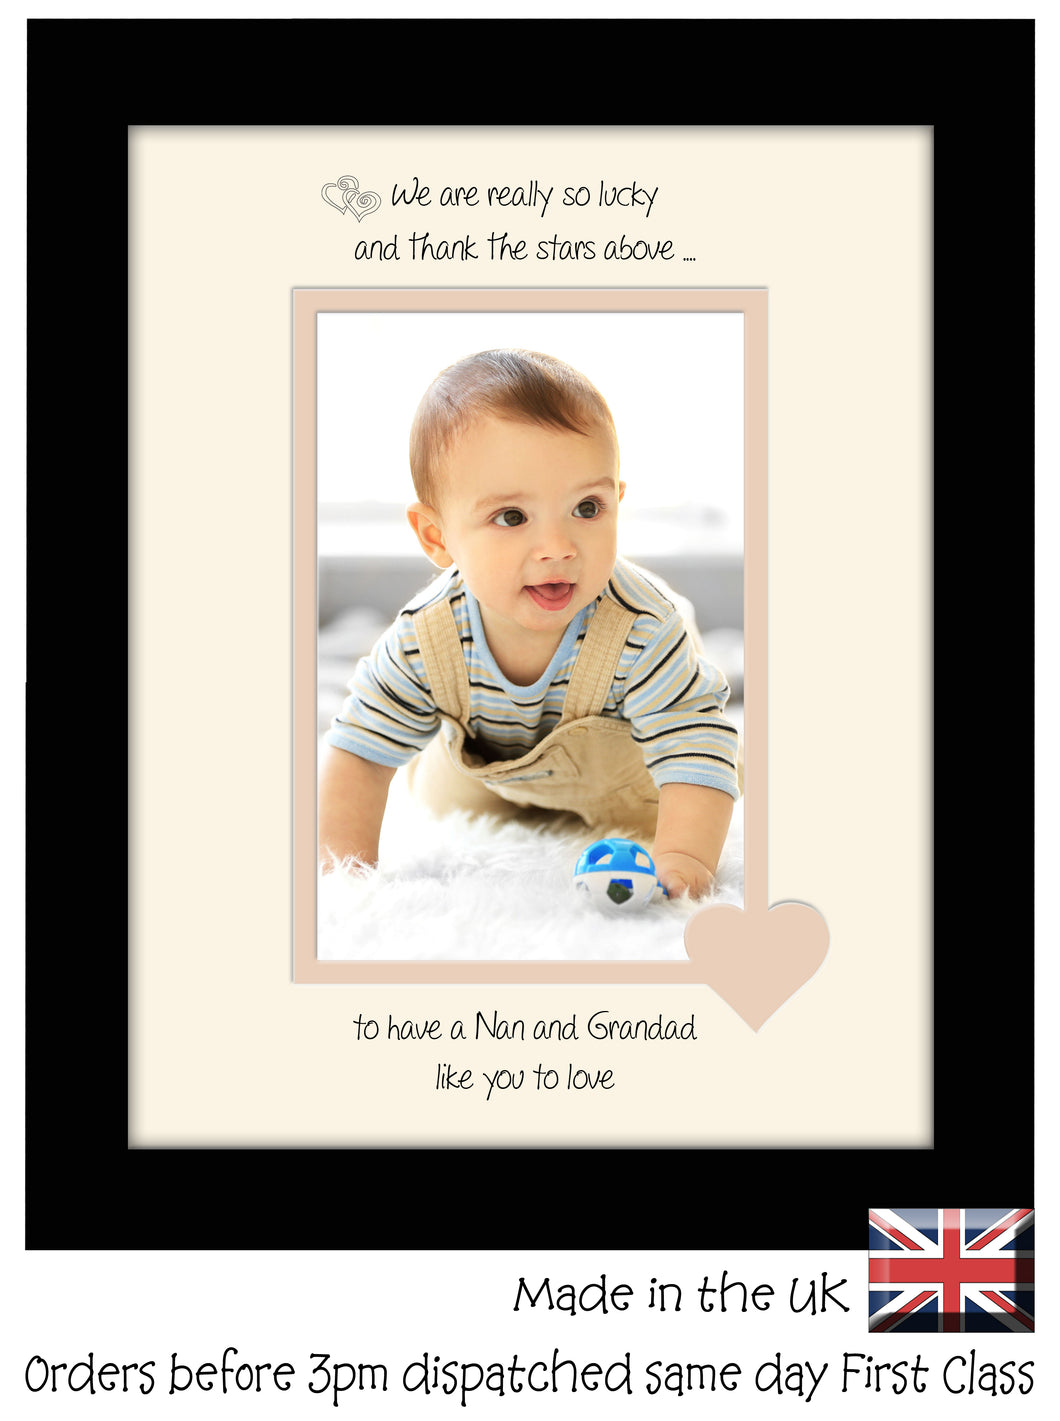 Nan & Grandad Photo Frame - We Thank the stars Nan & Grandad Portrait photo frame 6